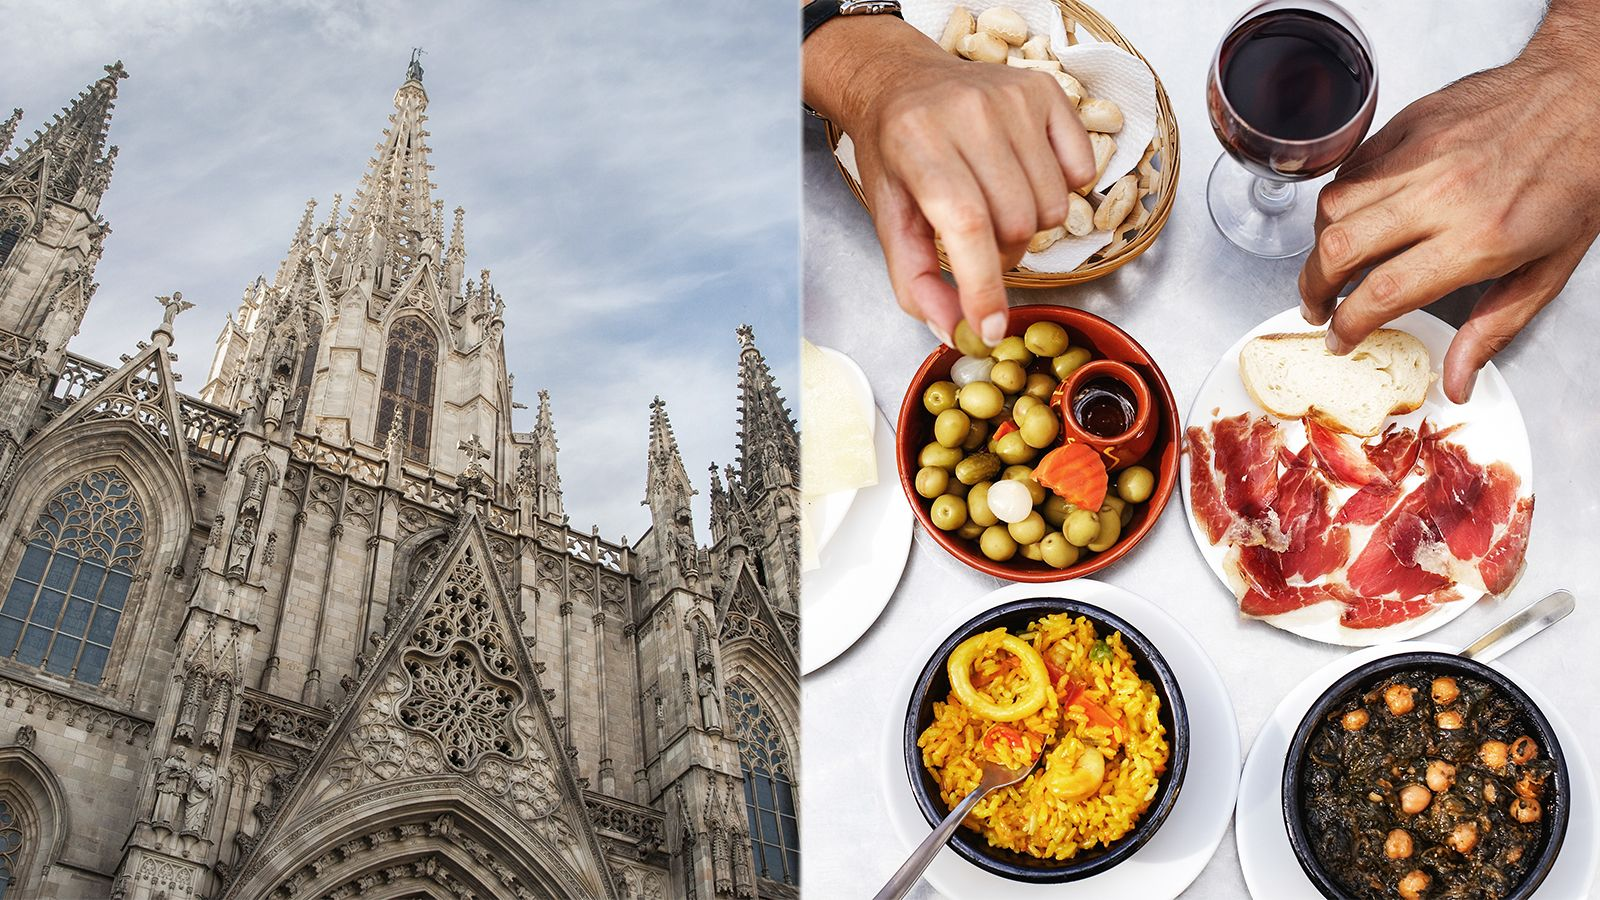 Combo Tour: Full-Day City Center Highlights & Gourmet Tapas with Flamenco